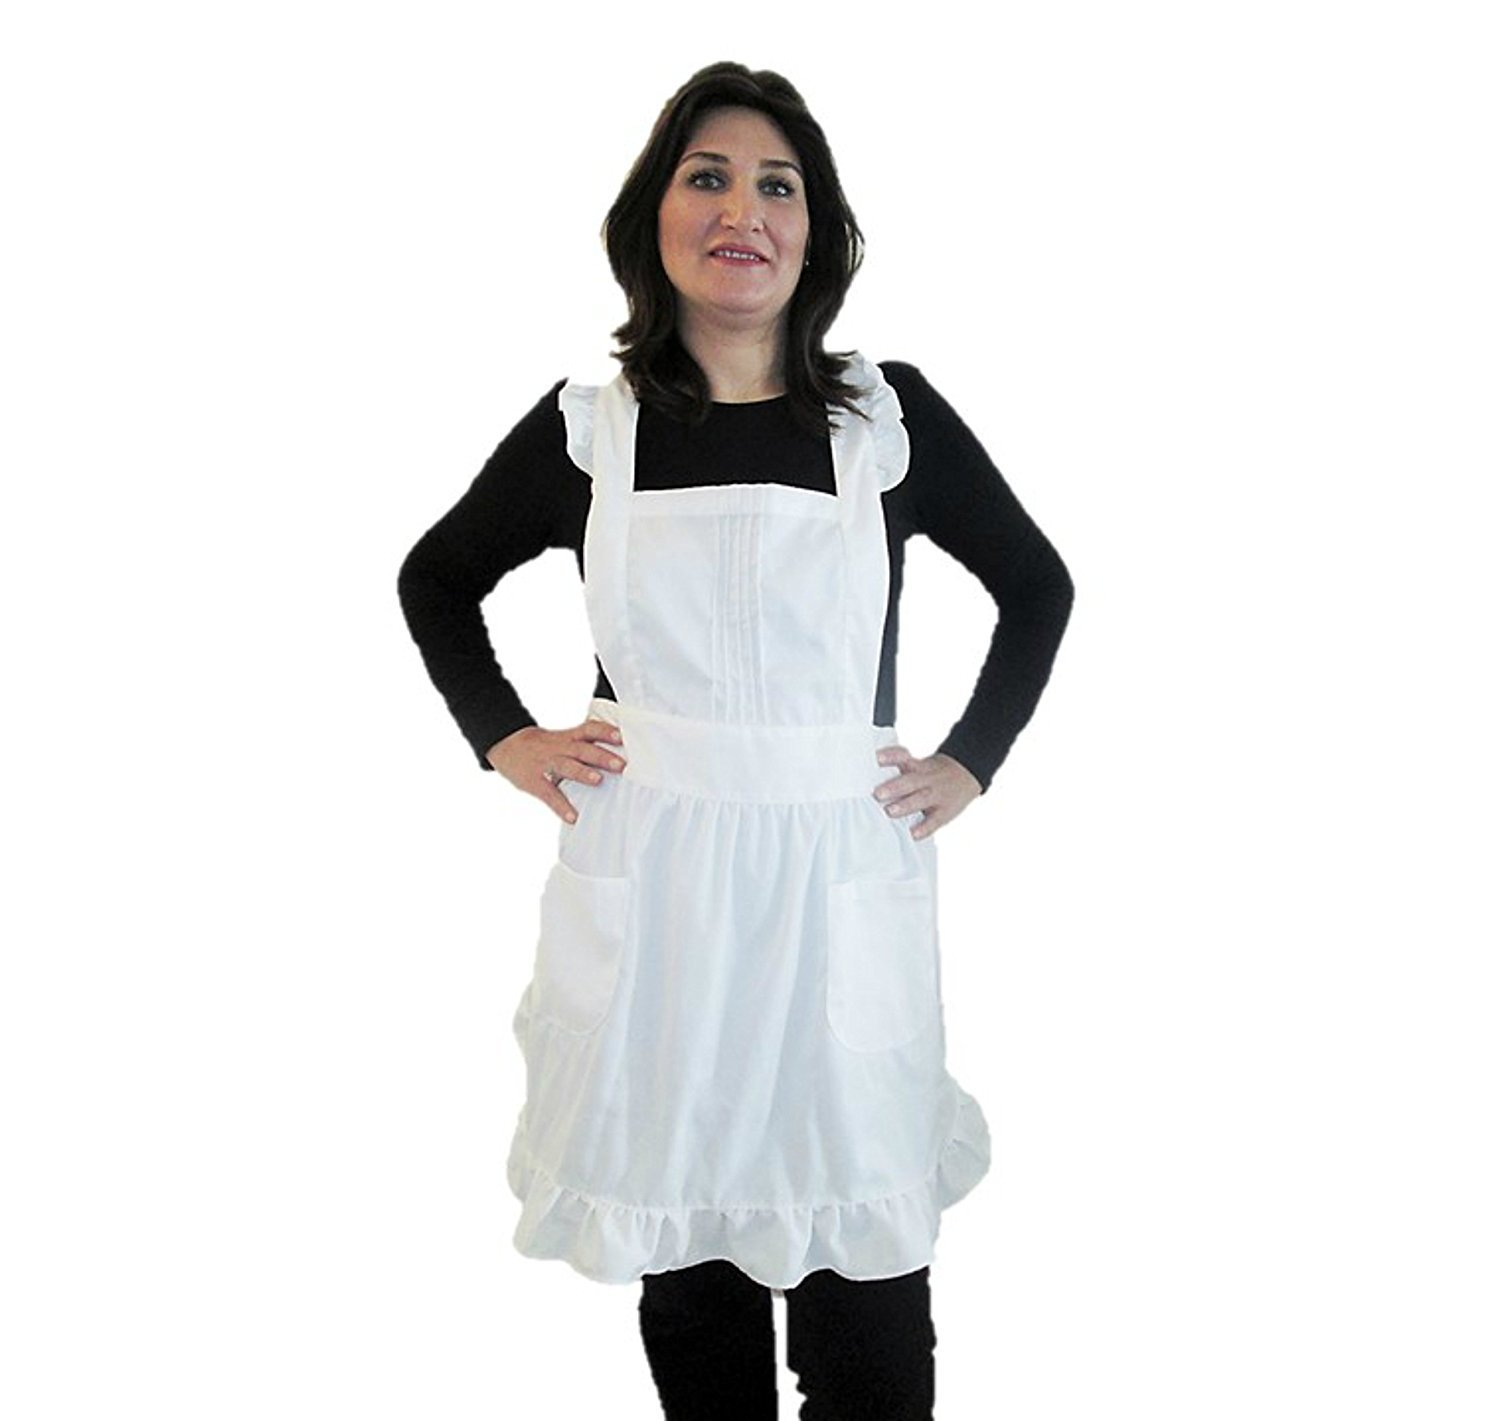 IB-ON Apron for Women & Girls with pockets plus sizes White Custom Printable Lovely White Apron for Cooks Bakers and Chefs, Servers & Waitresses Comfortable Fabric Packaged in a Beautiful Gift Box COMINHKPR104443